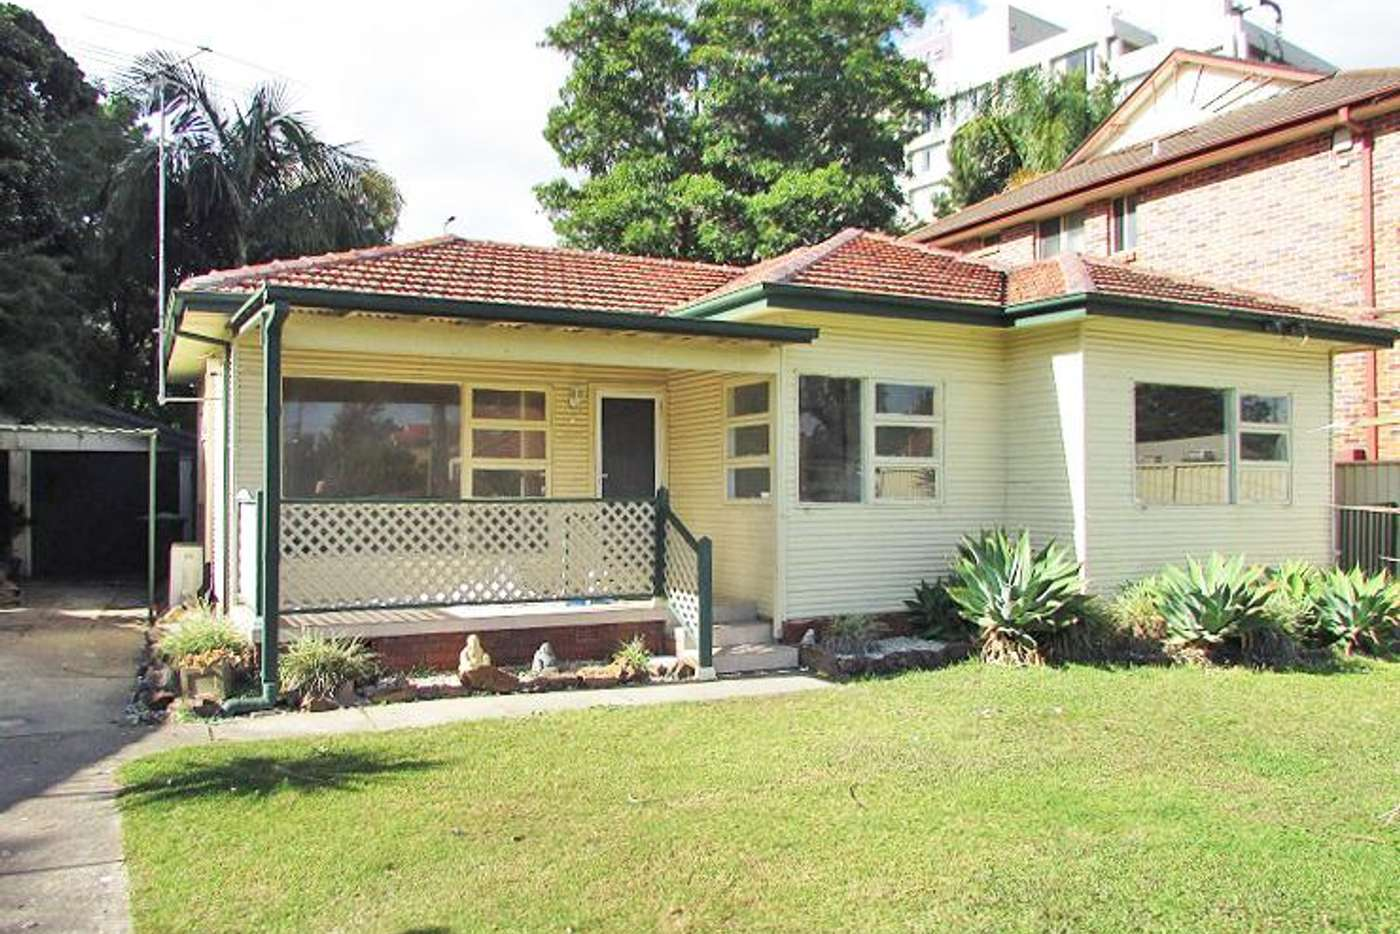 Main view of Homely house listing, 133 Arthur Street, Parramatta NSW 2150